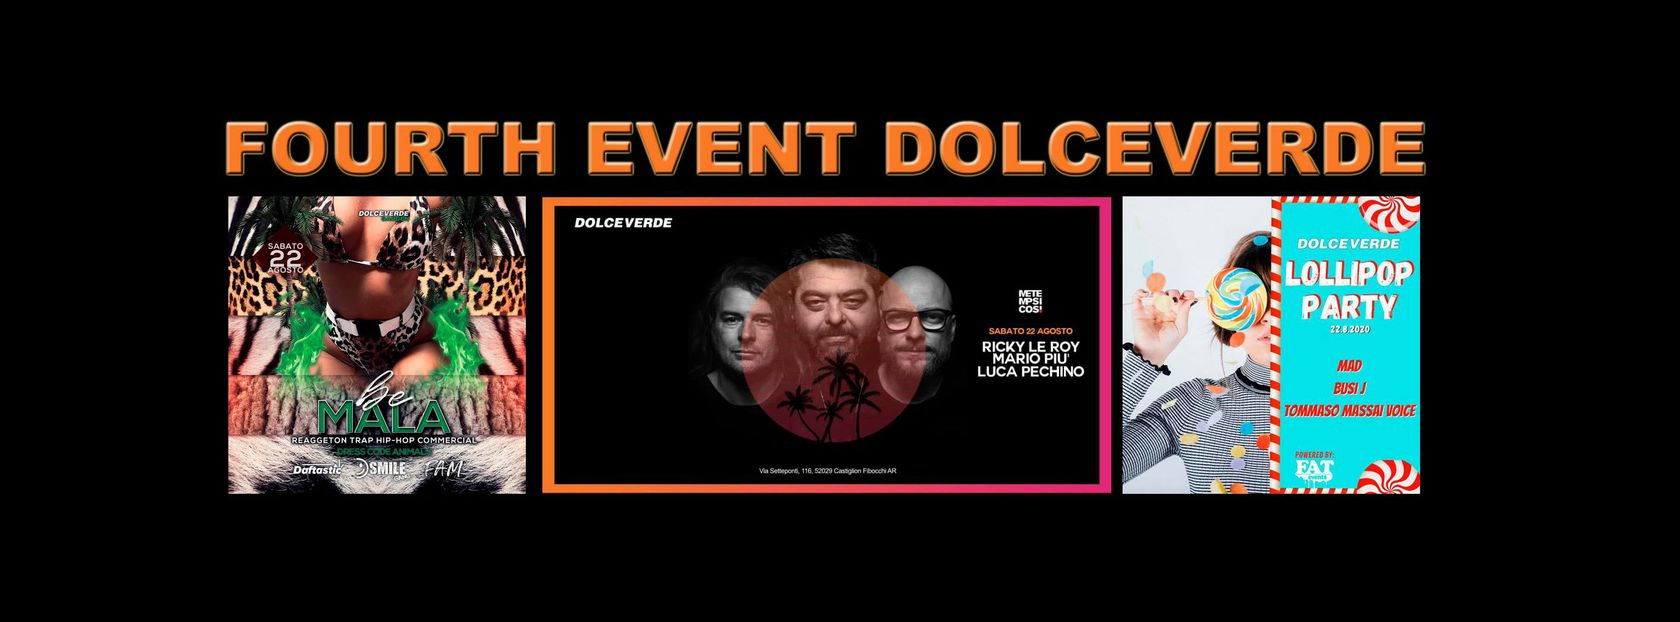 - DOLCEVERDE Fourth Event